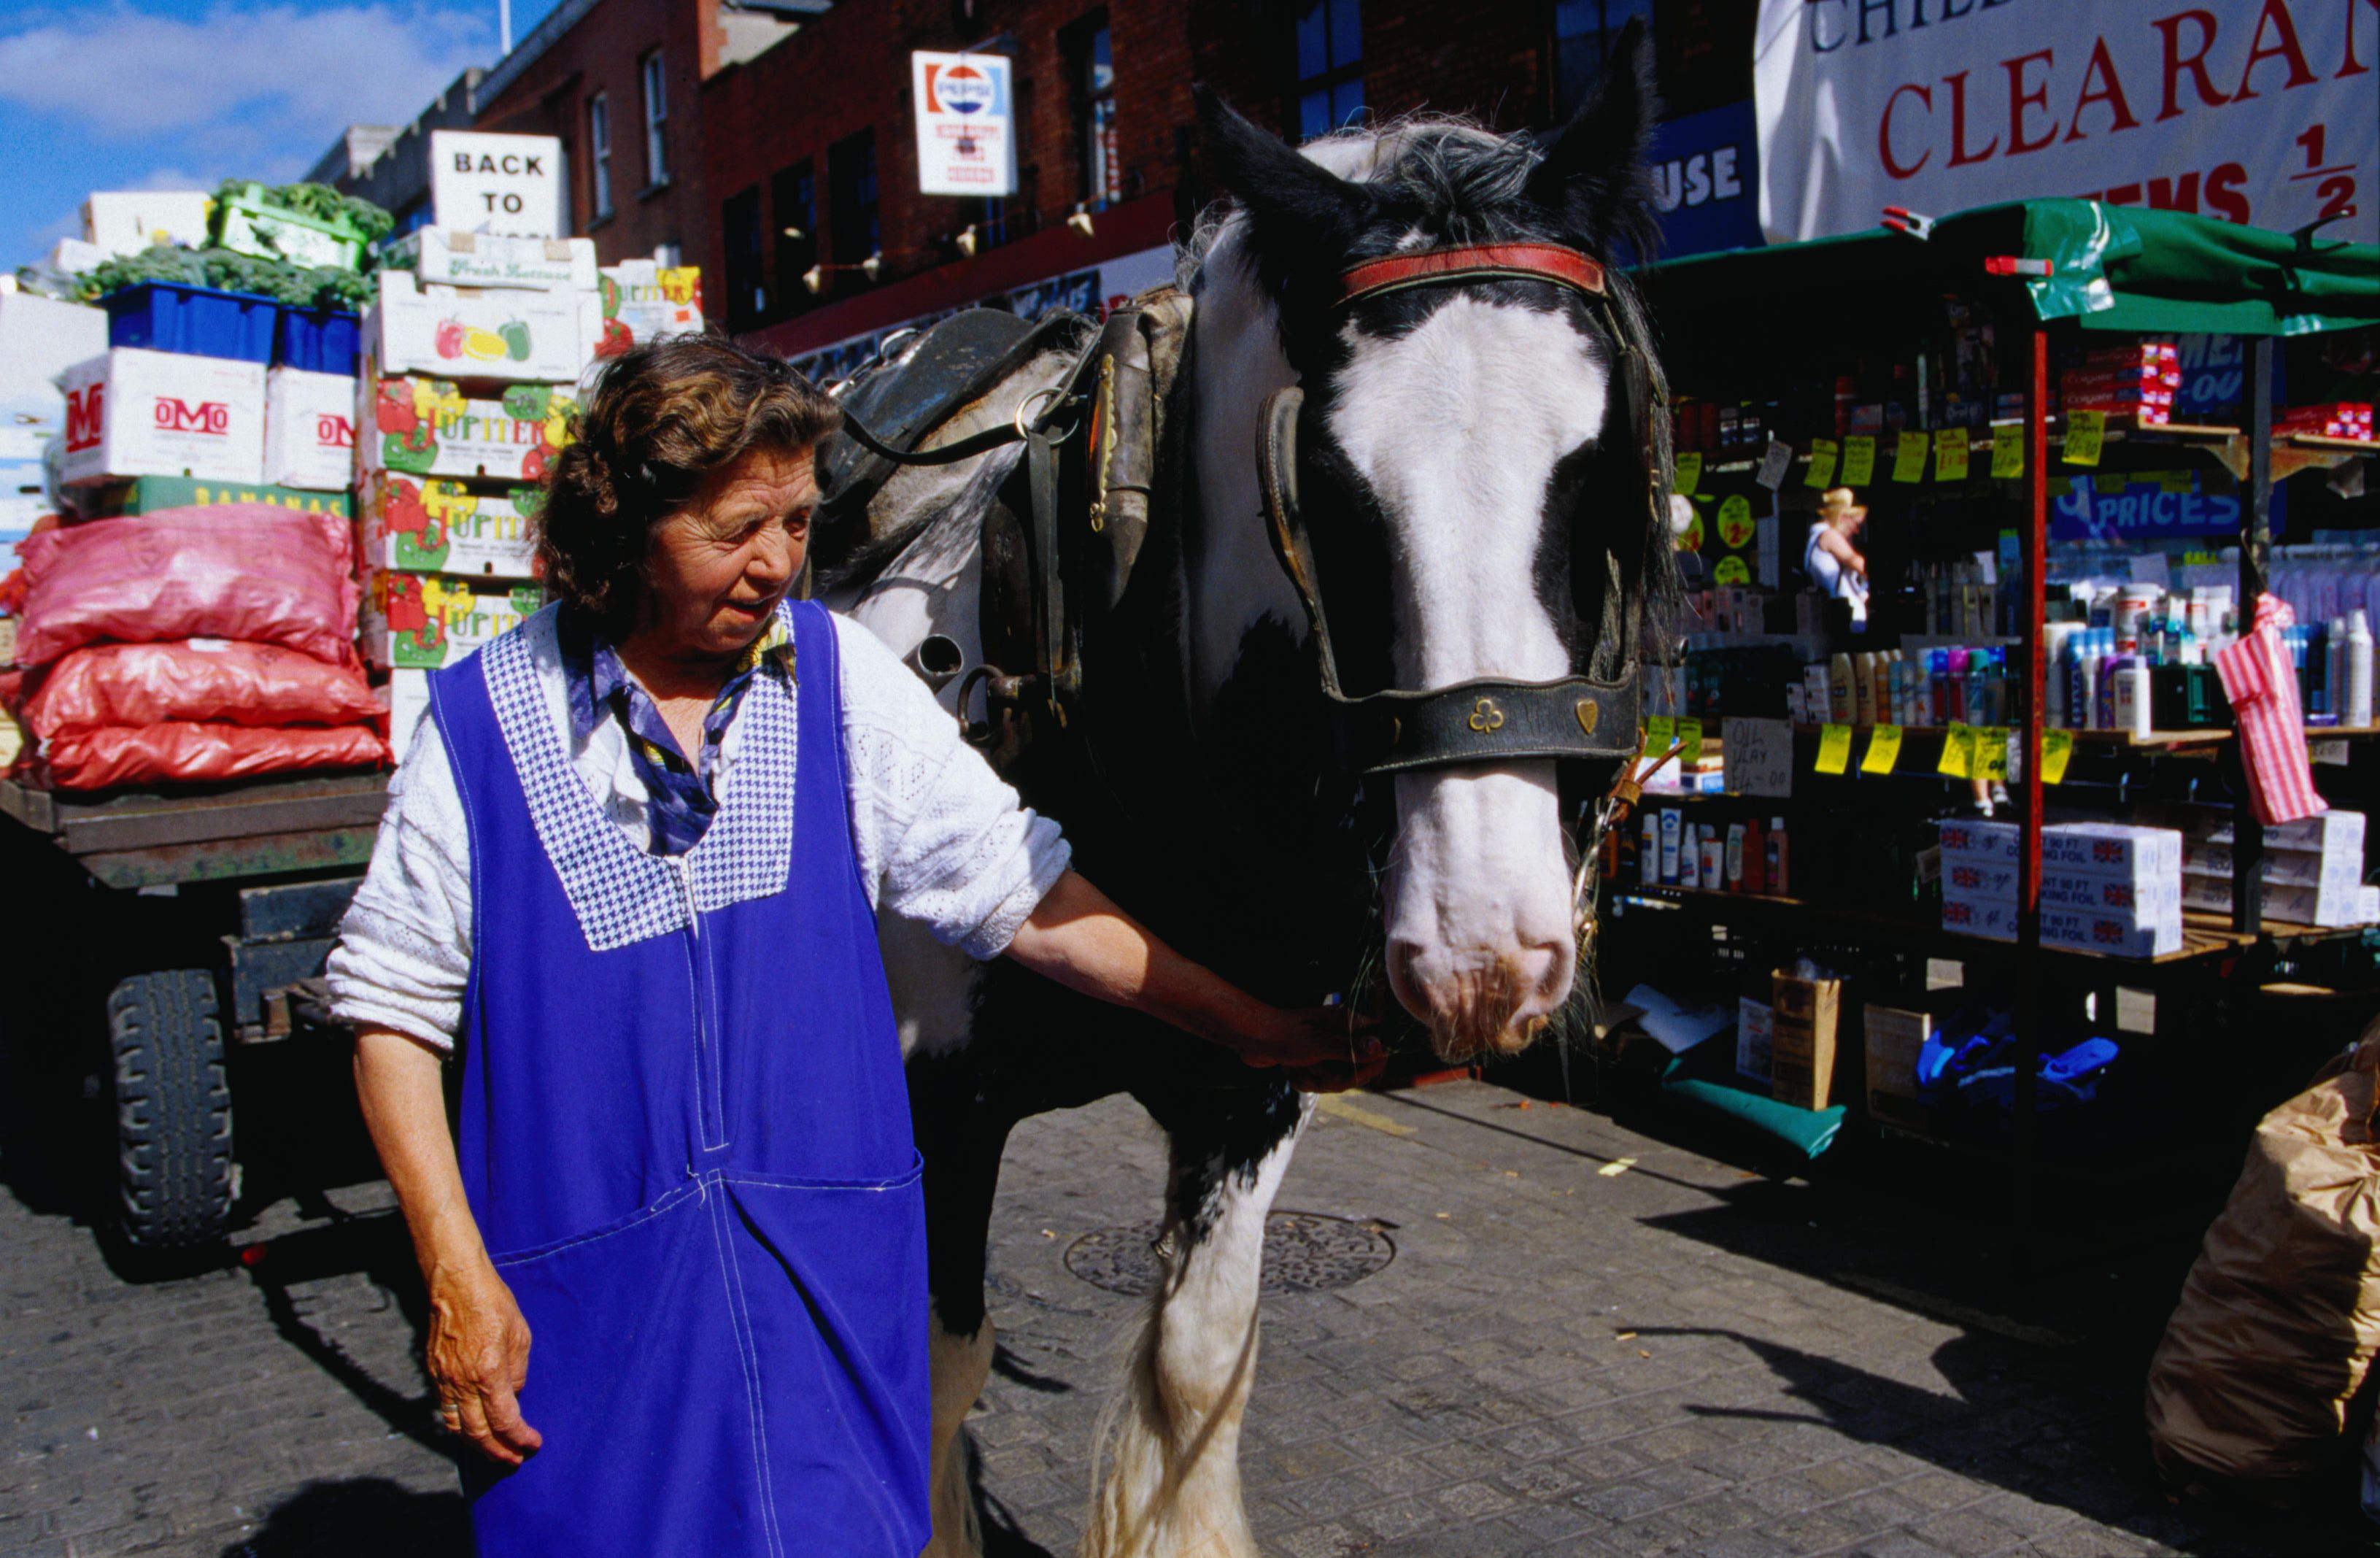 Traditional way of getting around at the Moore Street market - County Dublin, Dublin